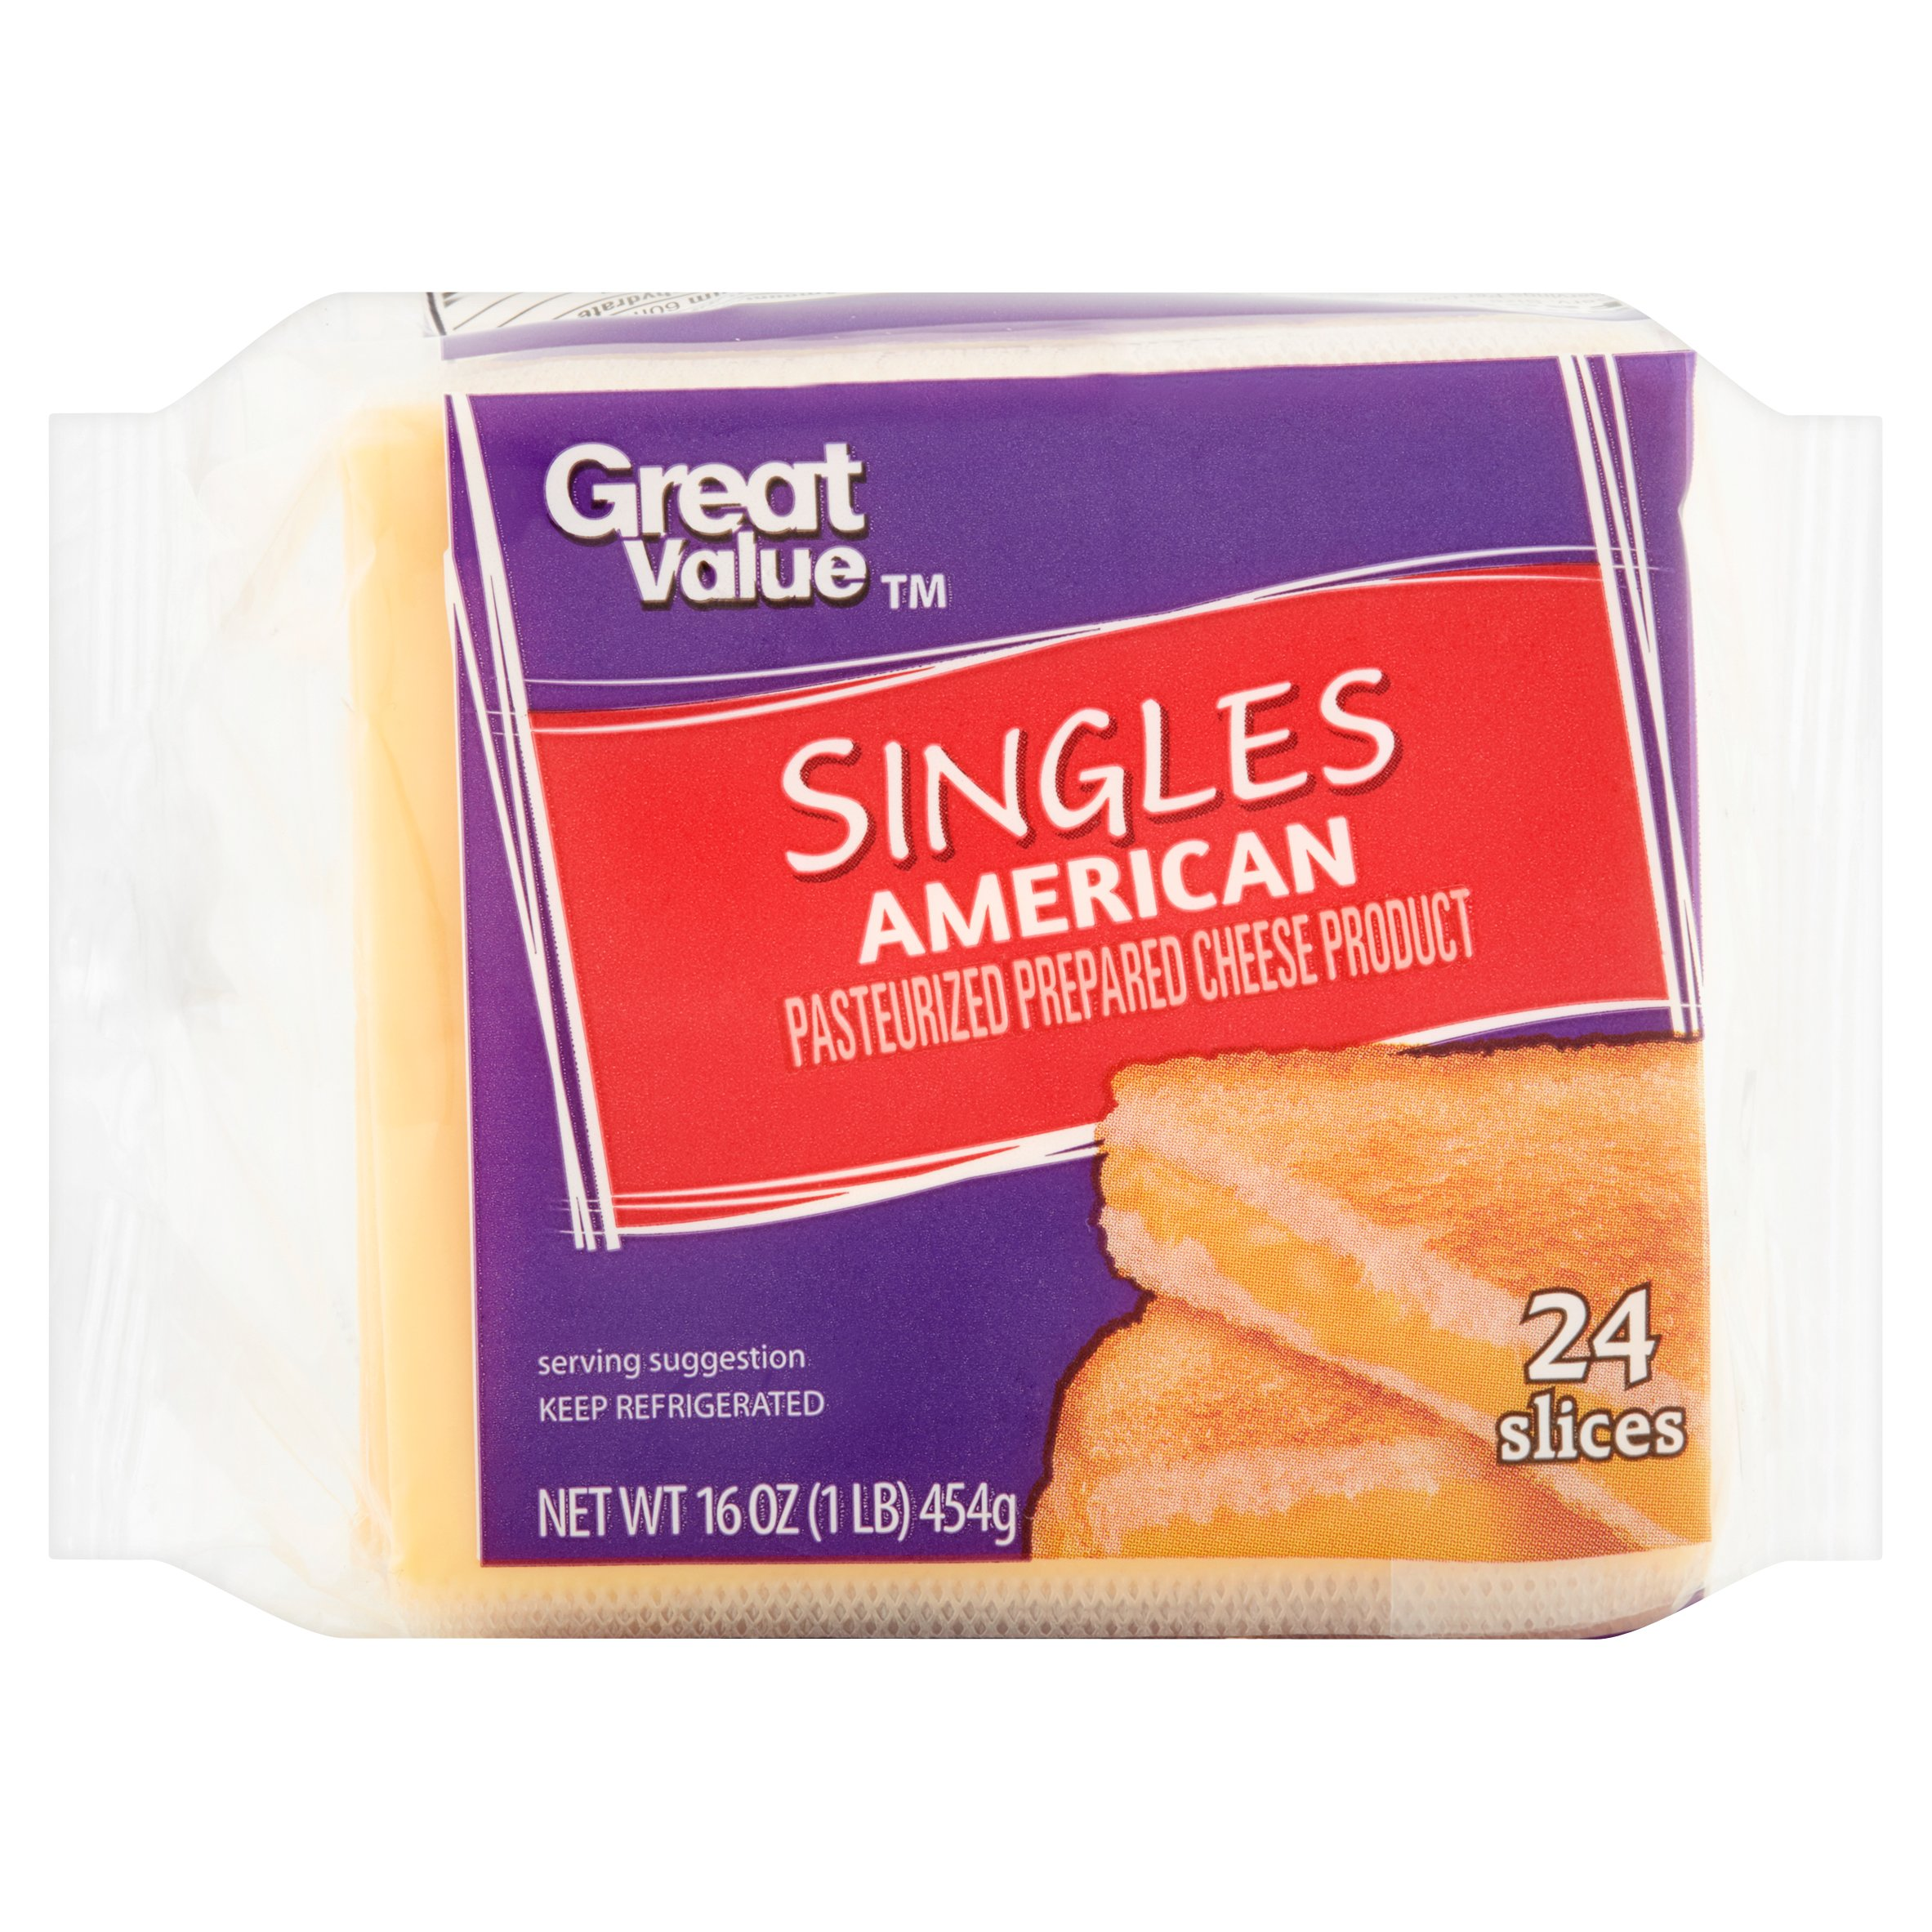 Great Value Singles American Cheese, 24 count, 16 oz by Wal-Mart Stores, Inc.